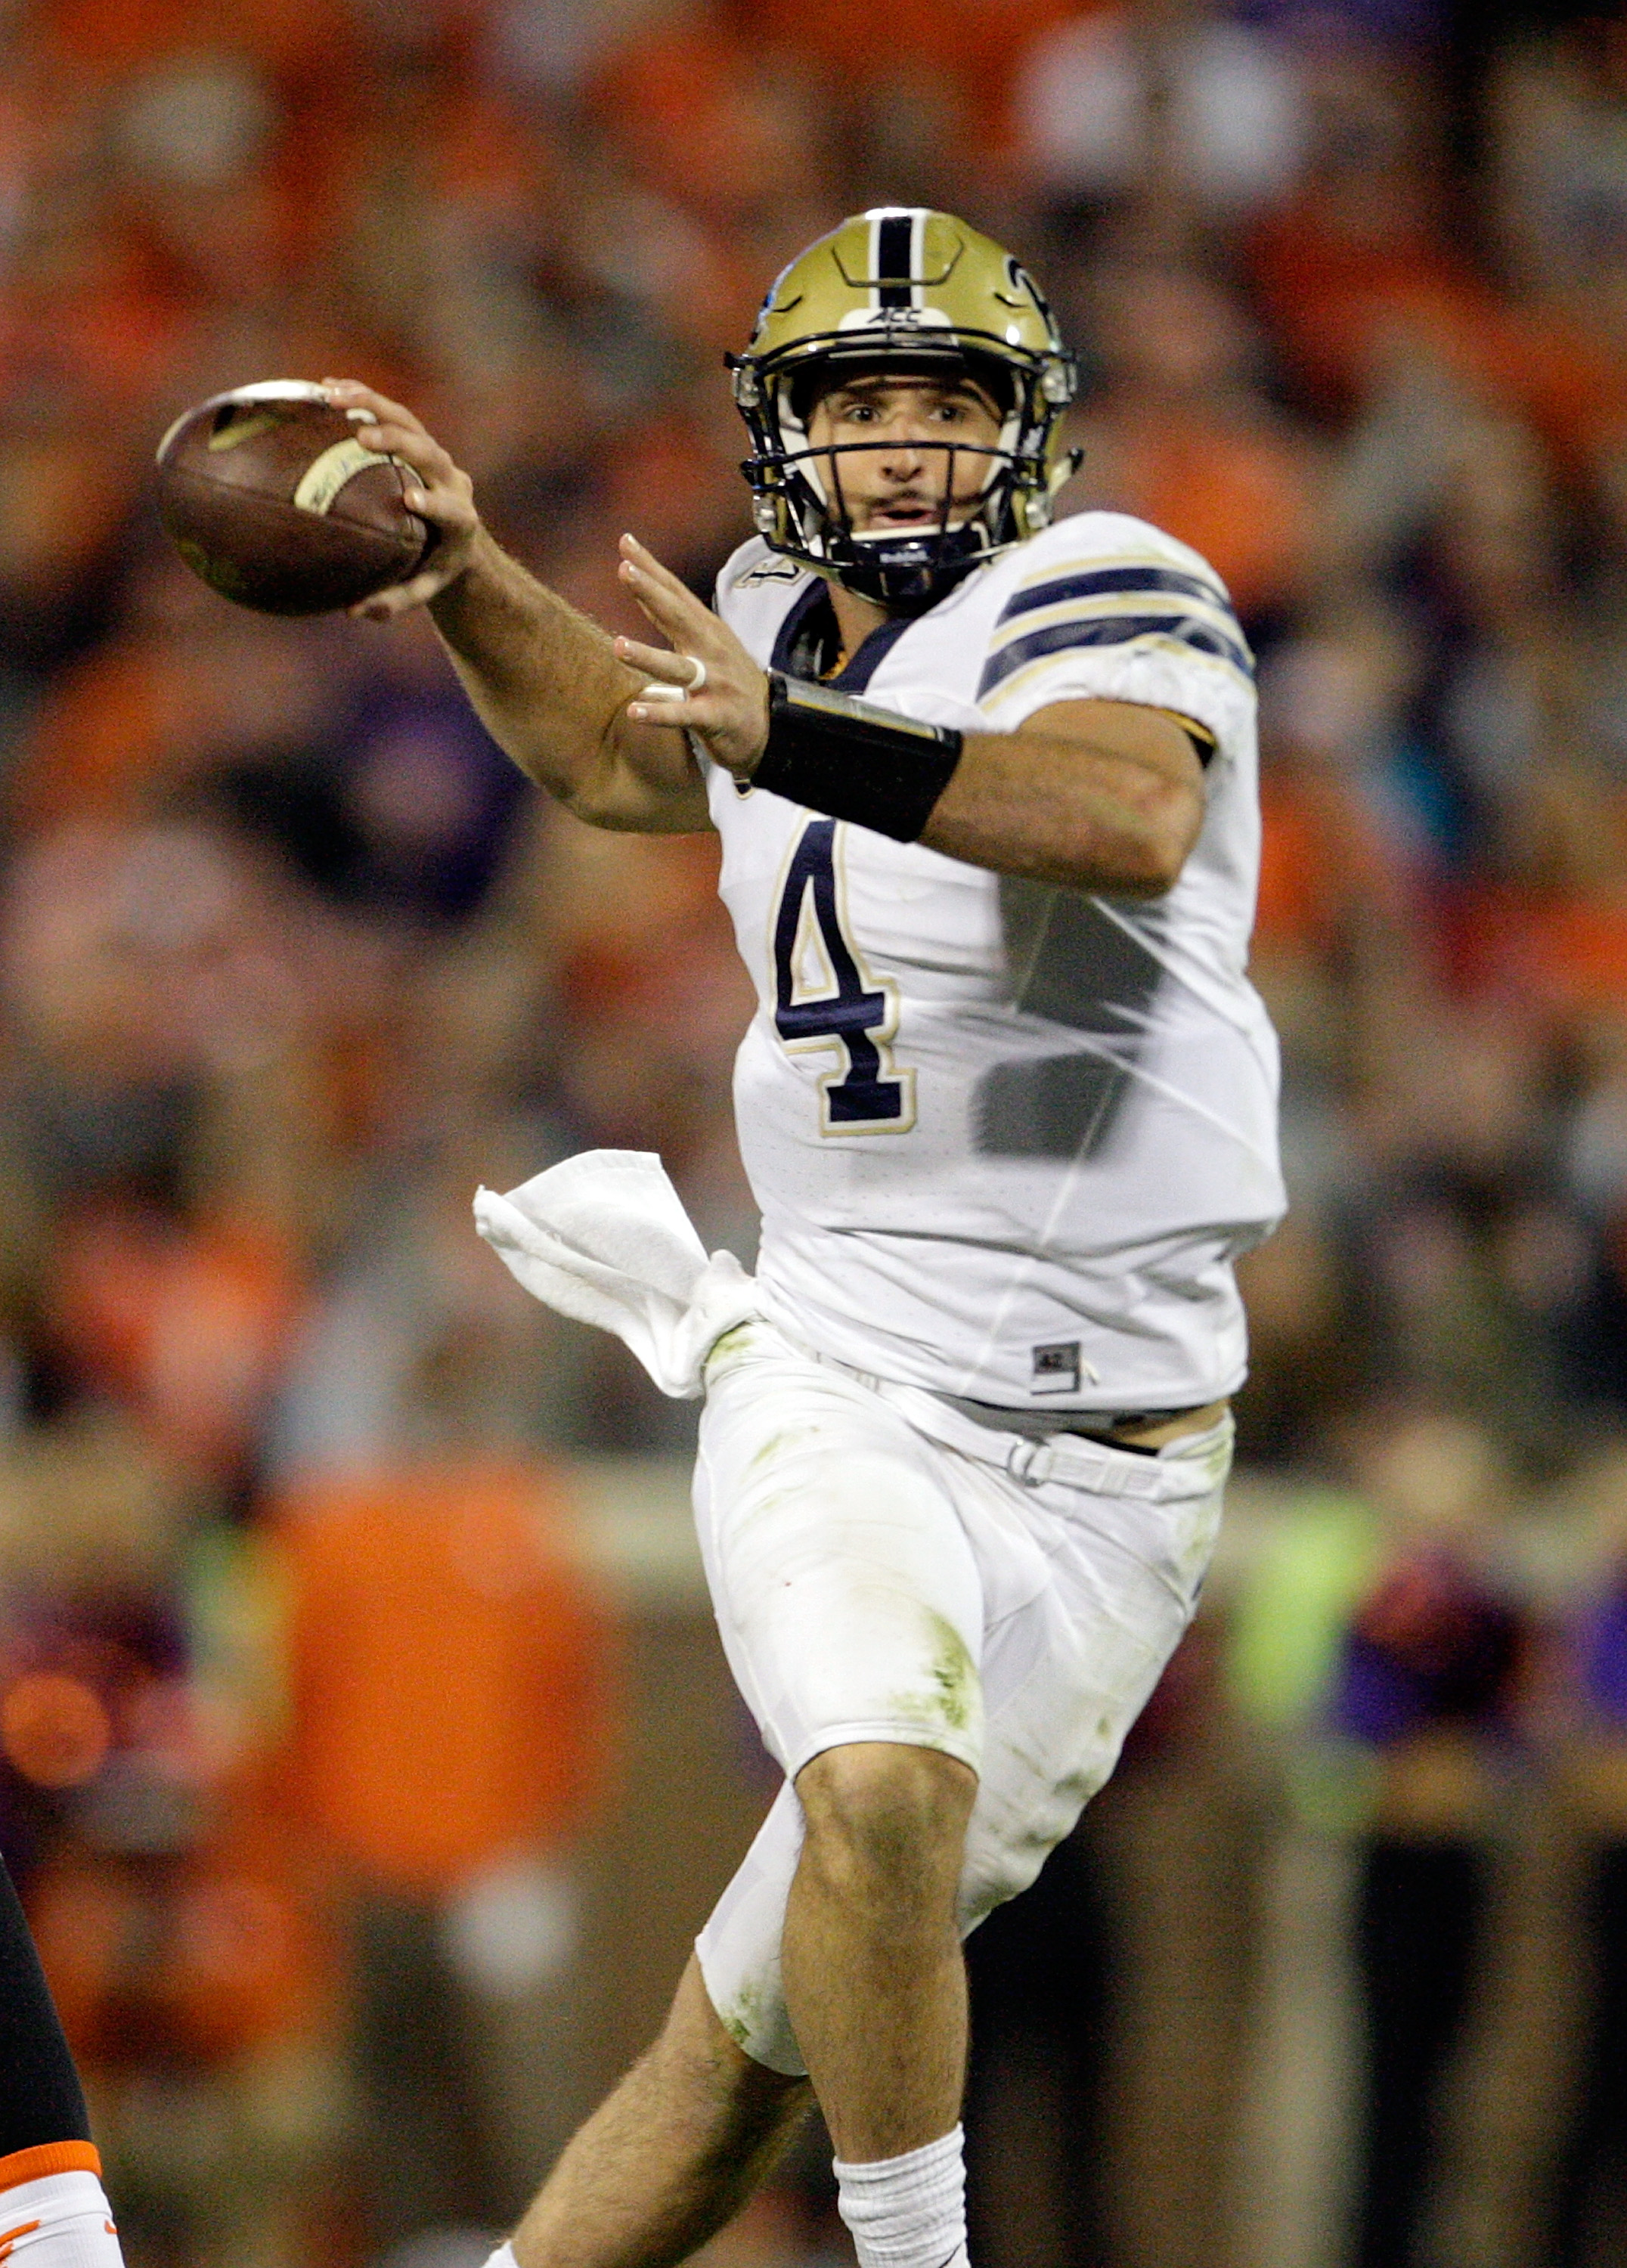 Fifth-round draft pick Nathan Peterman of the Pittsburgh Panthers adds to the Bills' competition at quarterback. (Photo by Tyler Smith/Getty Images)